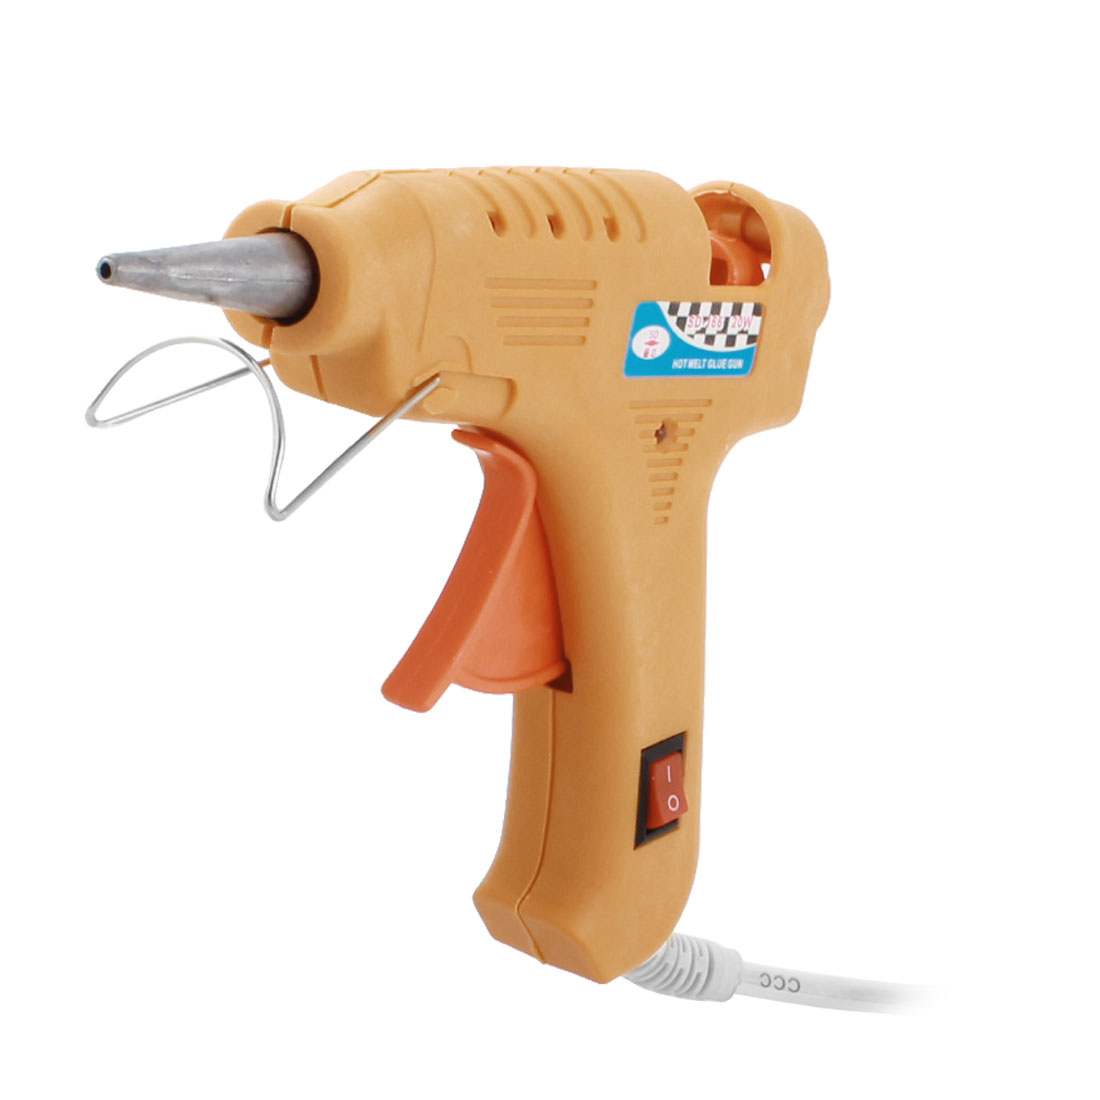 AC 100-240V US Plug 20W 2mm Tapered Nozzle Hot Melt Glue Gun SD-166